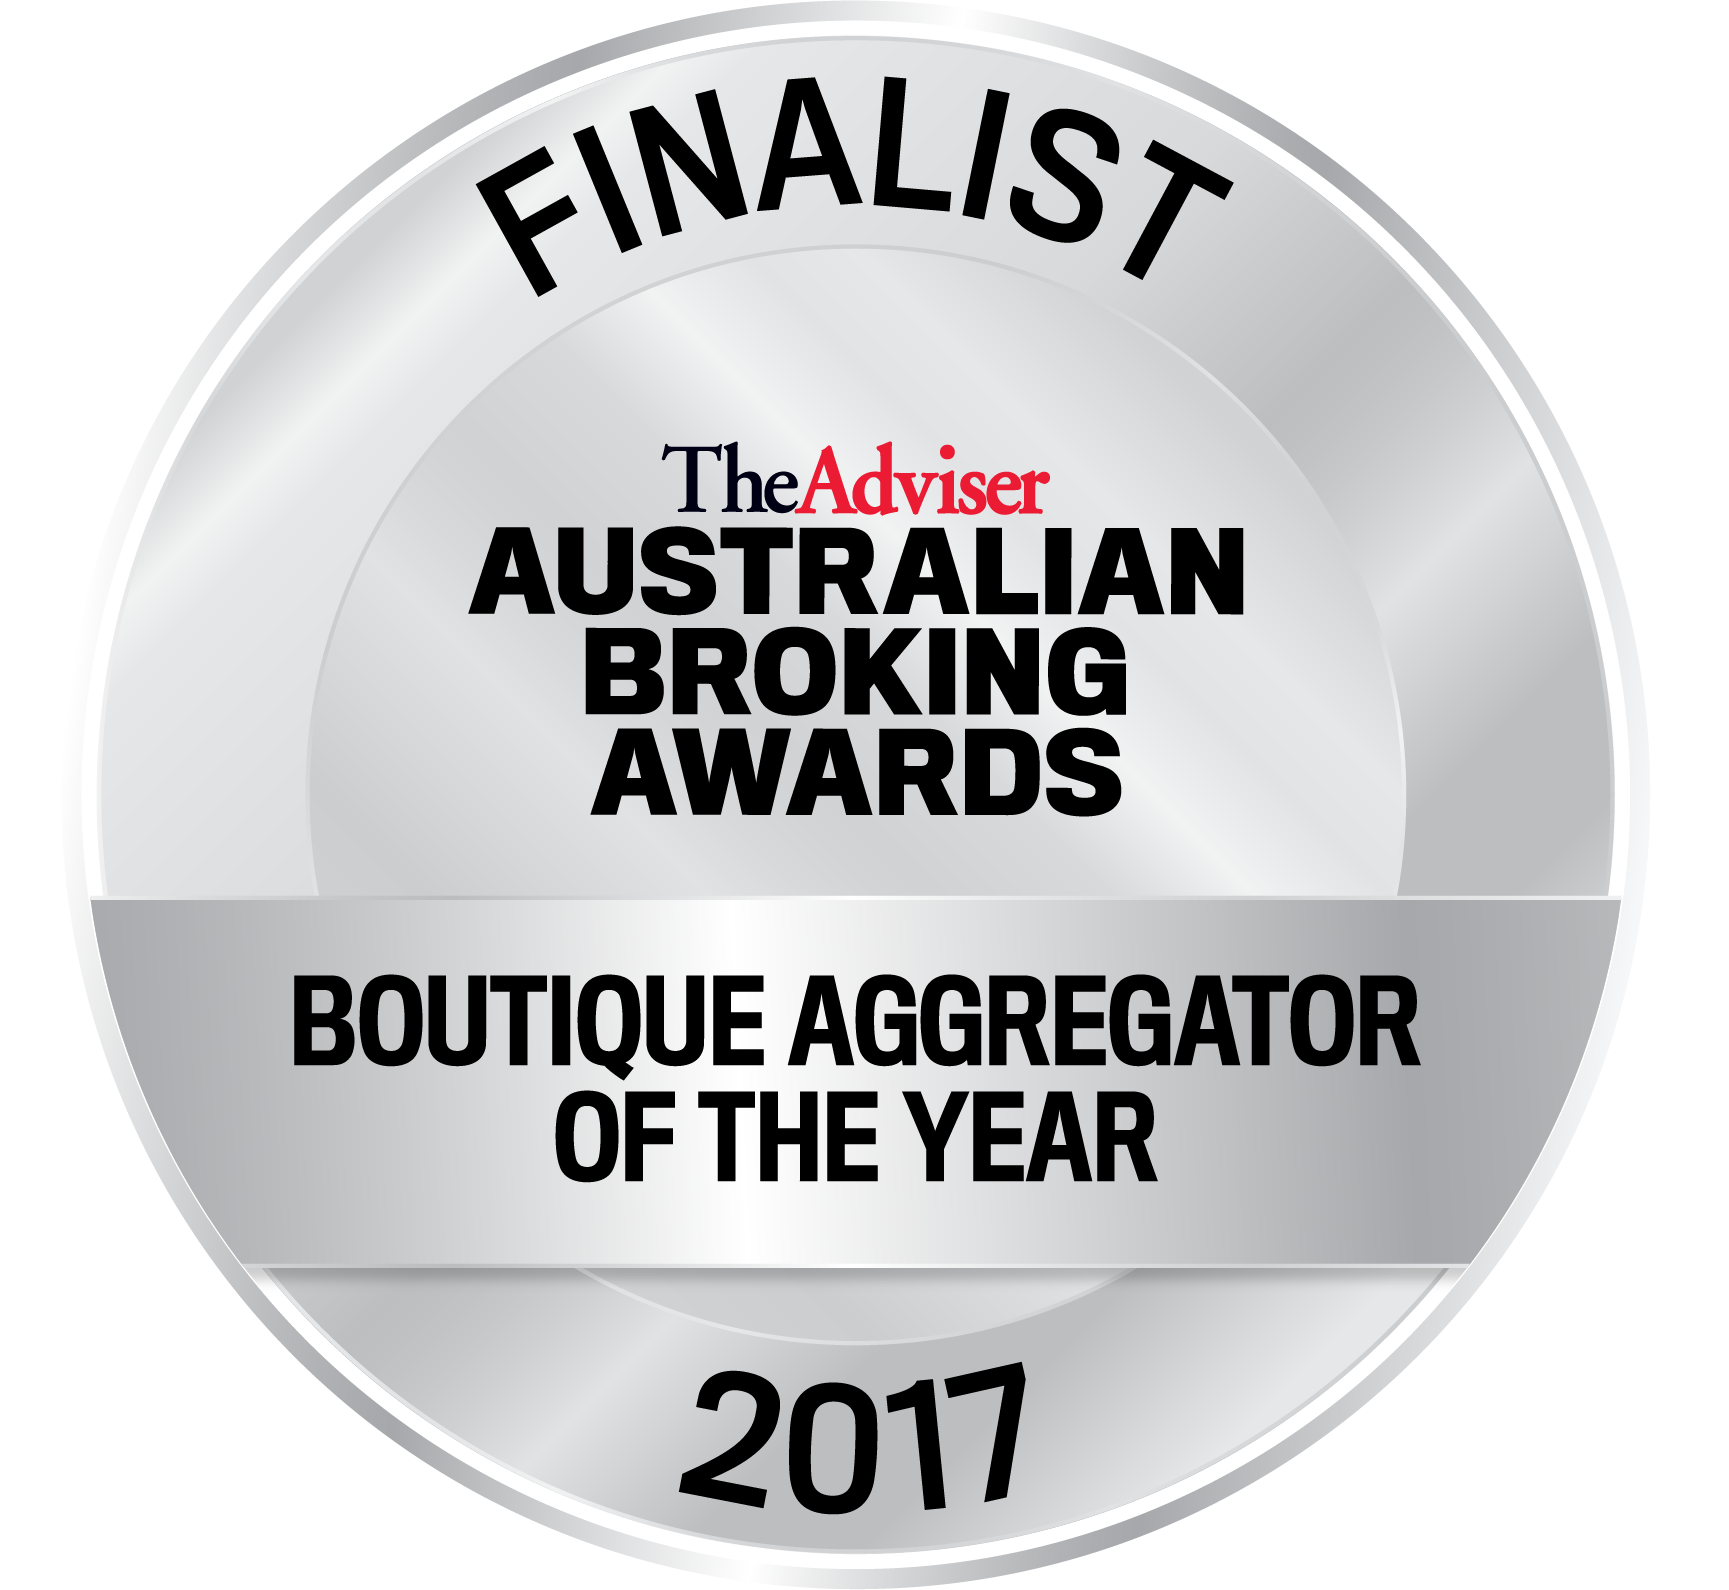 AMA Finalist - Boutique Aggregator of the Year 2017